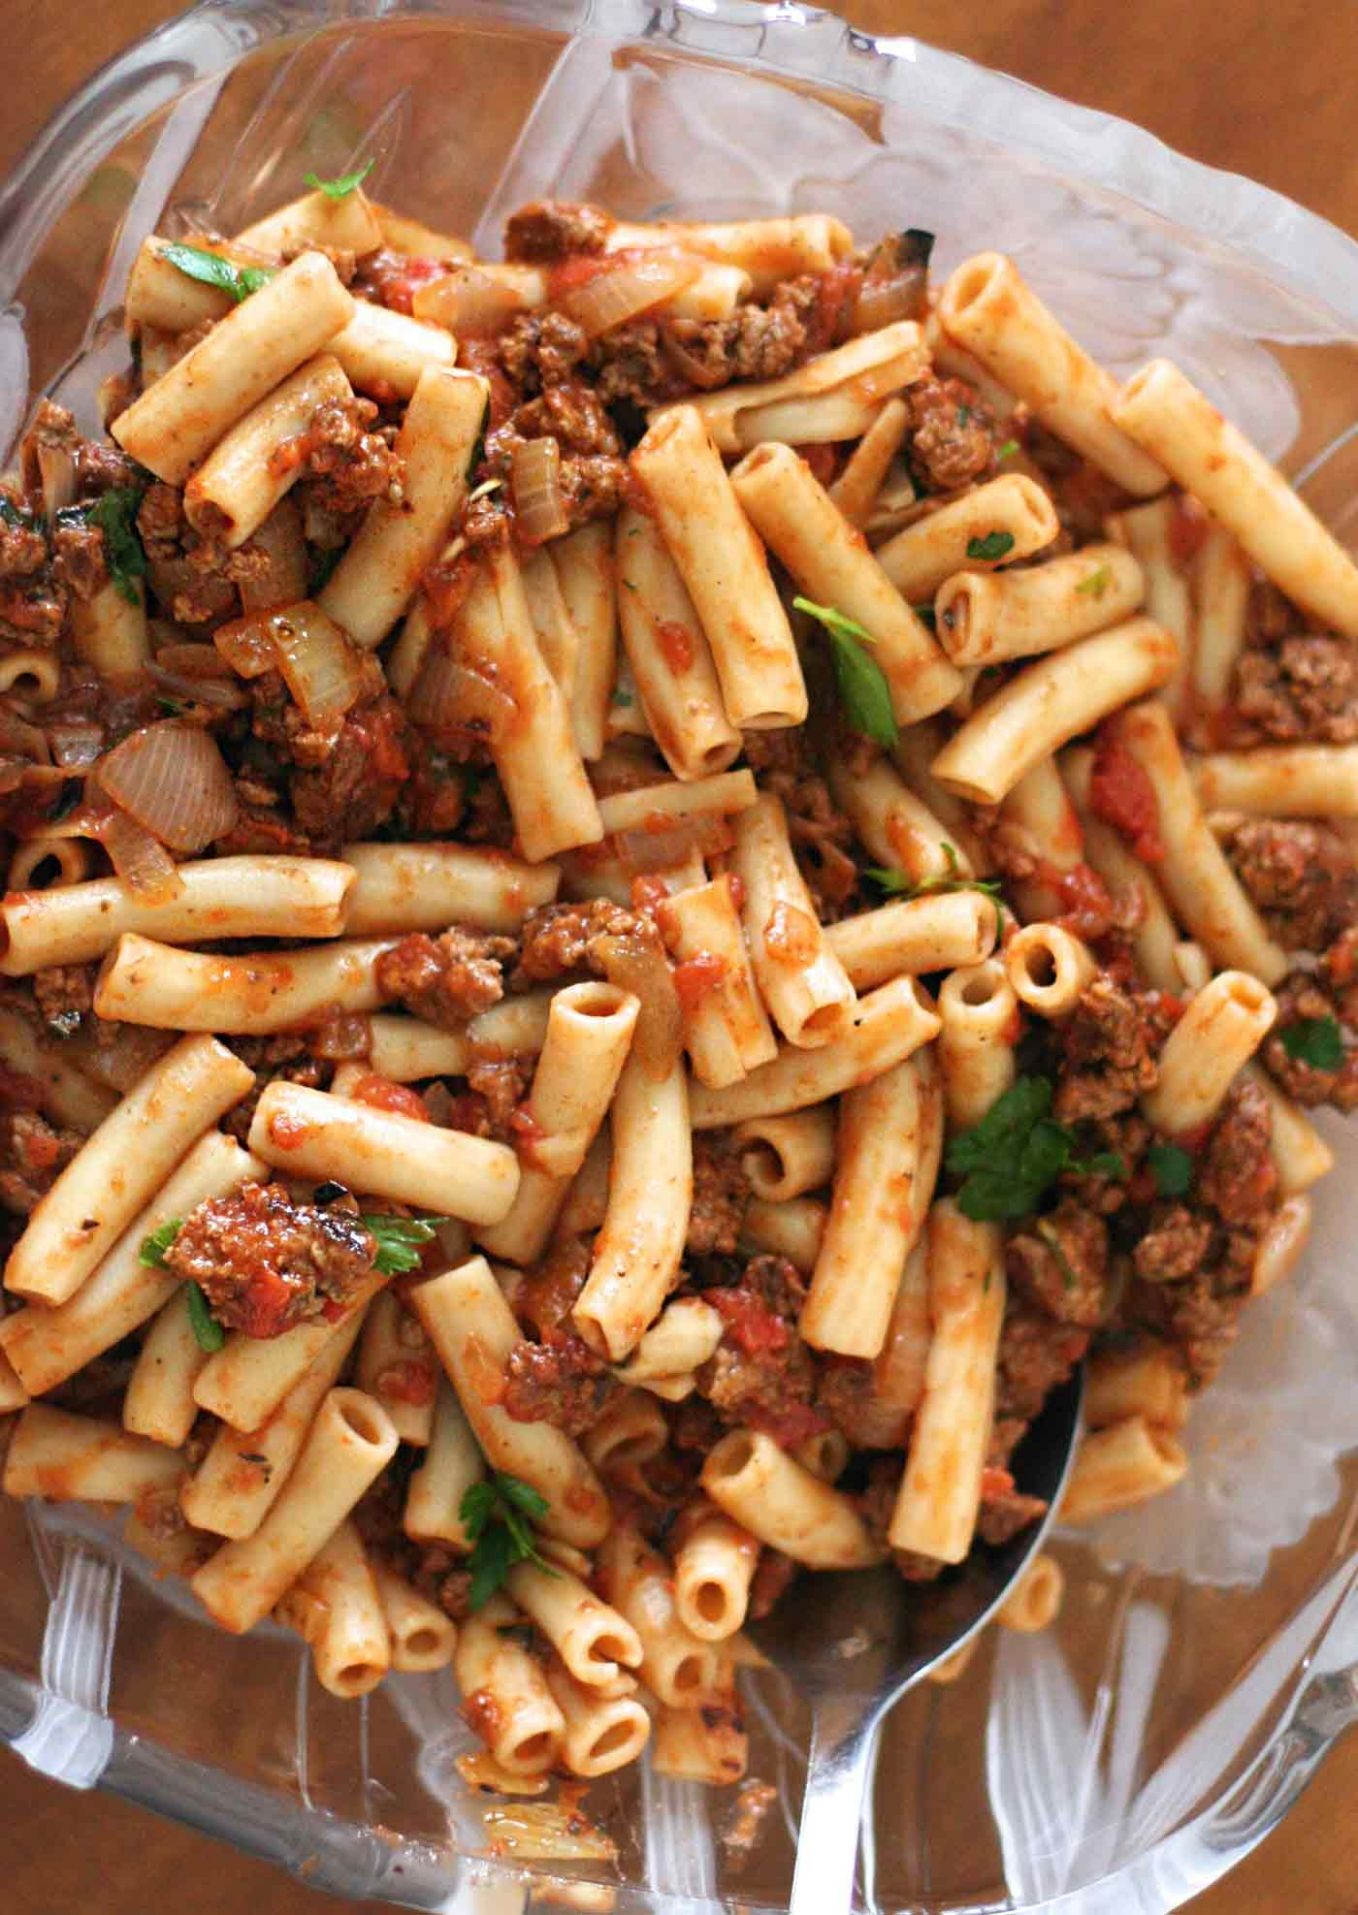 Penne Pasta with Meat Sauce - Recipes Pasta Mince Beef